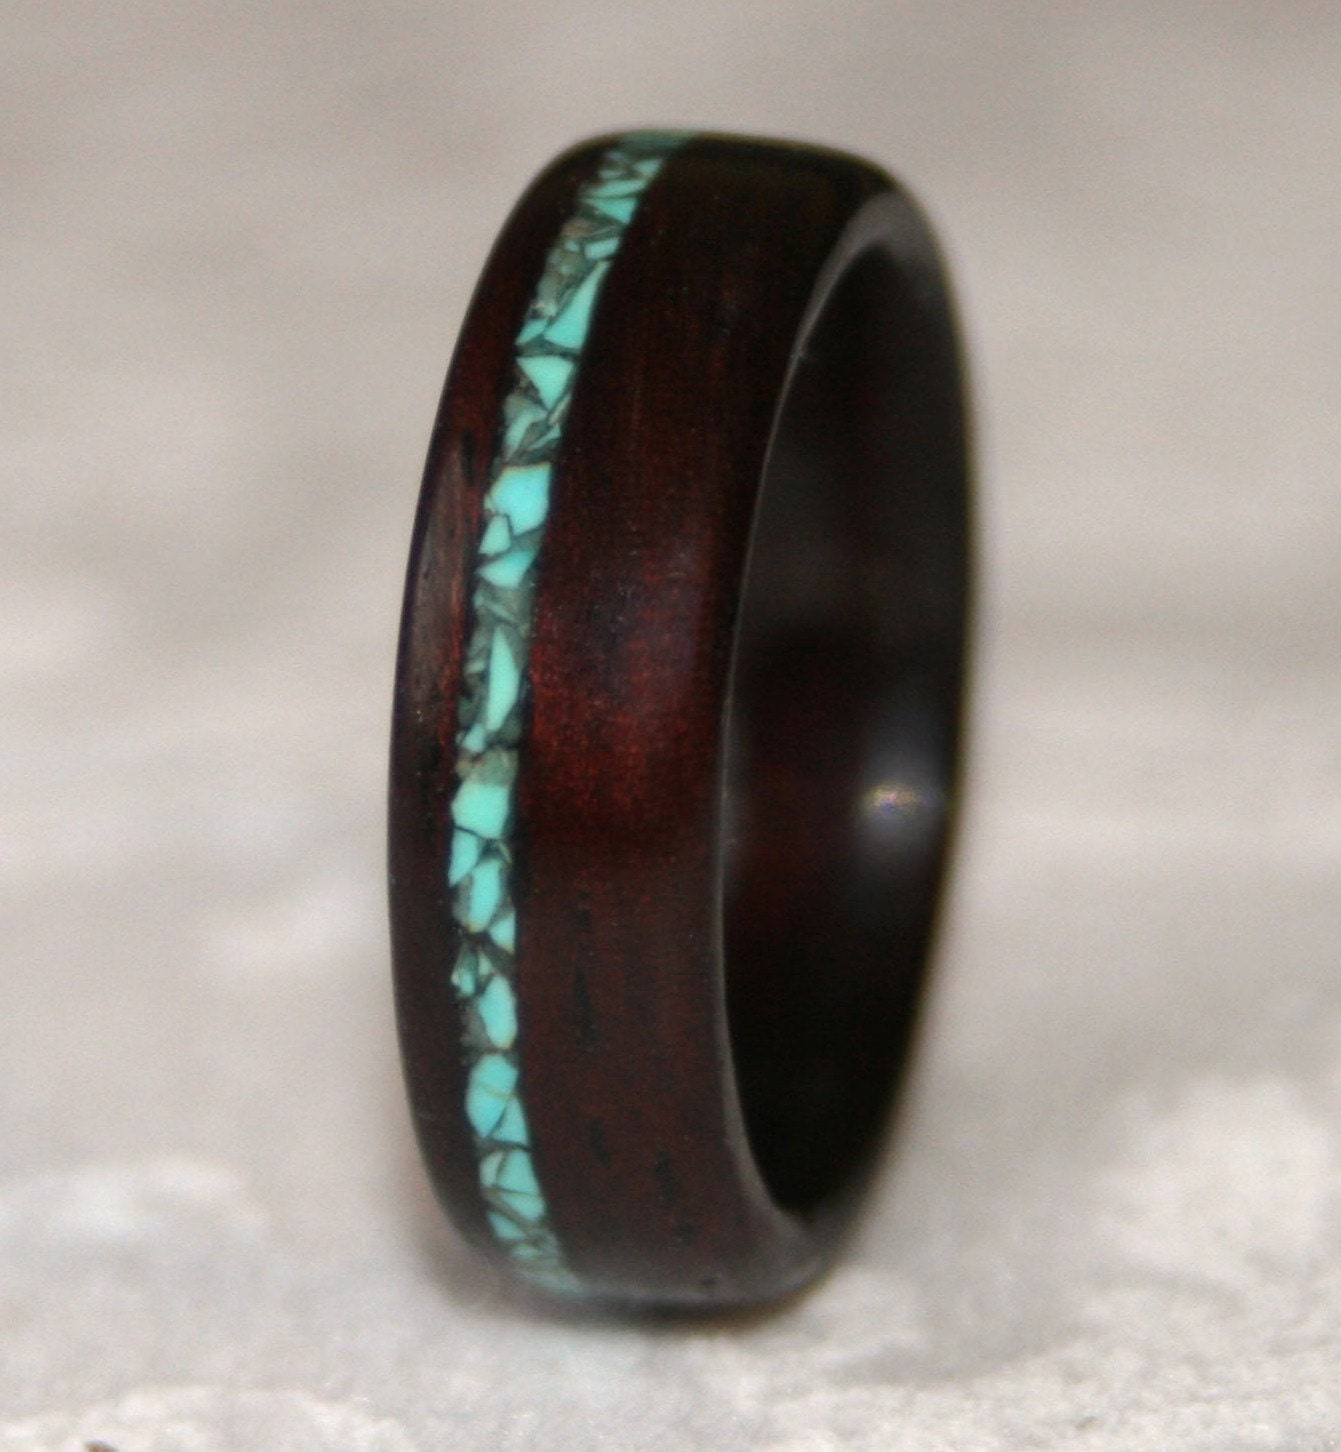 Wooden Wedding Ring Wood Wedding Band Wooden Ring With Stone